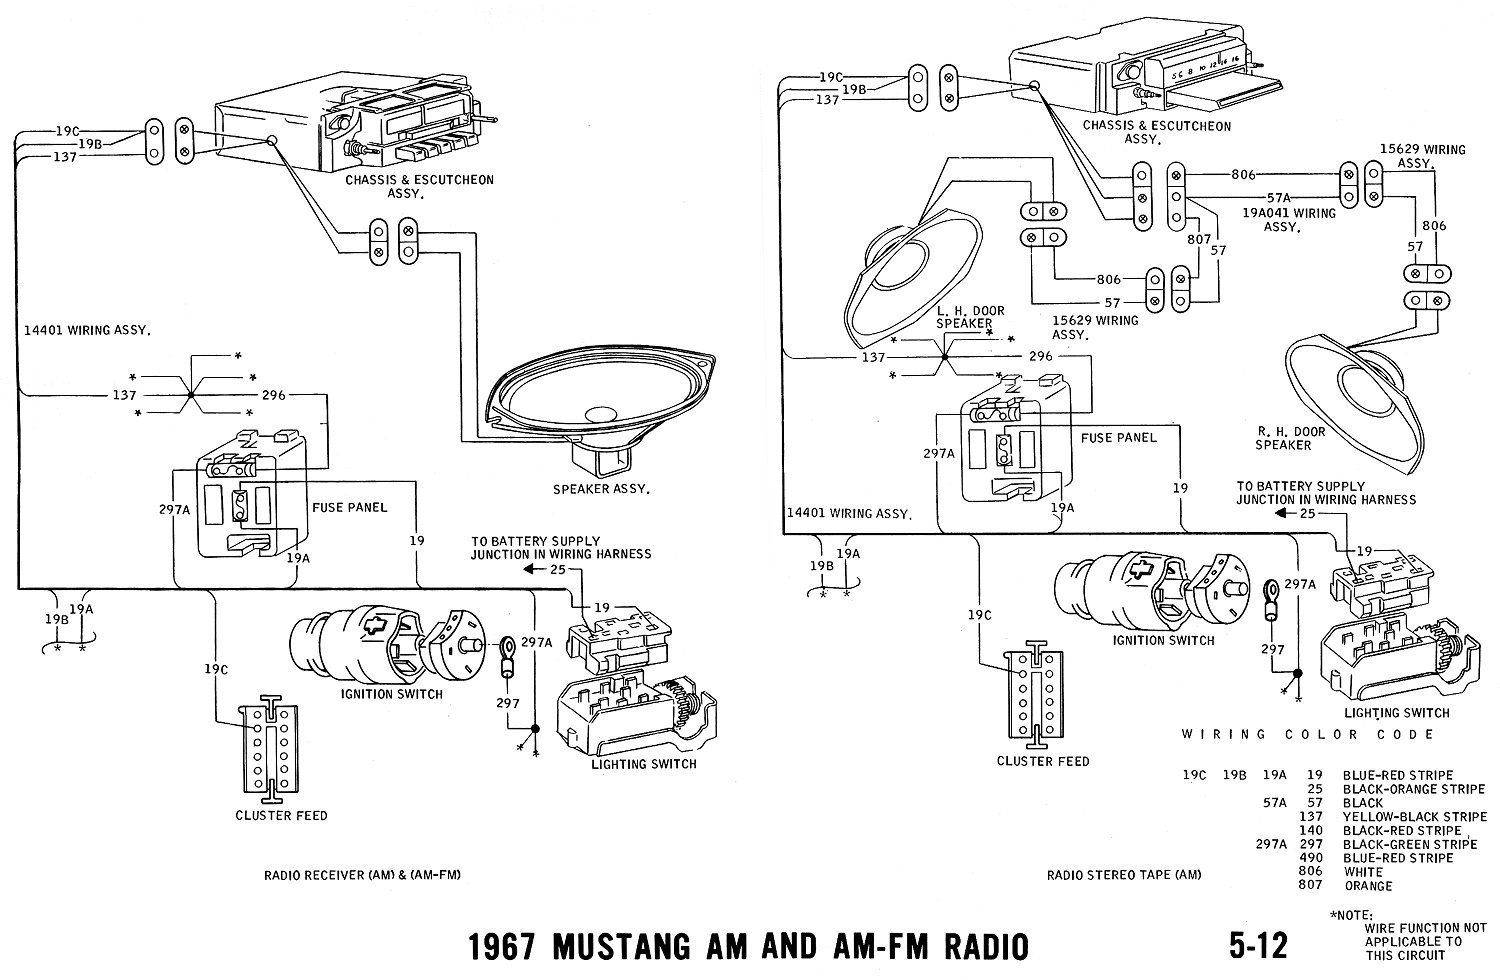 1970 Gm Radio Wiring Diagram Trusted Diagrams Gmc Stereo 1966 Chevelle Enthusiast U2022 2002 Envoy